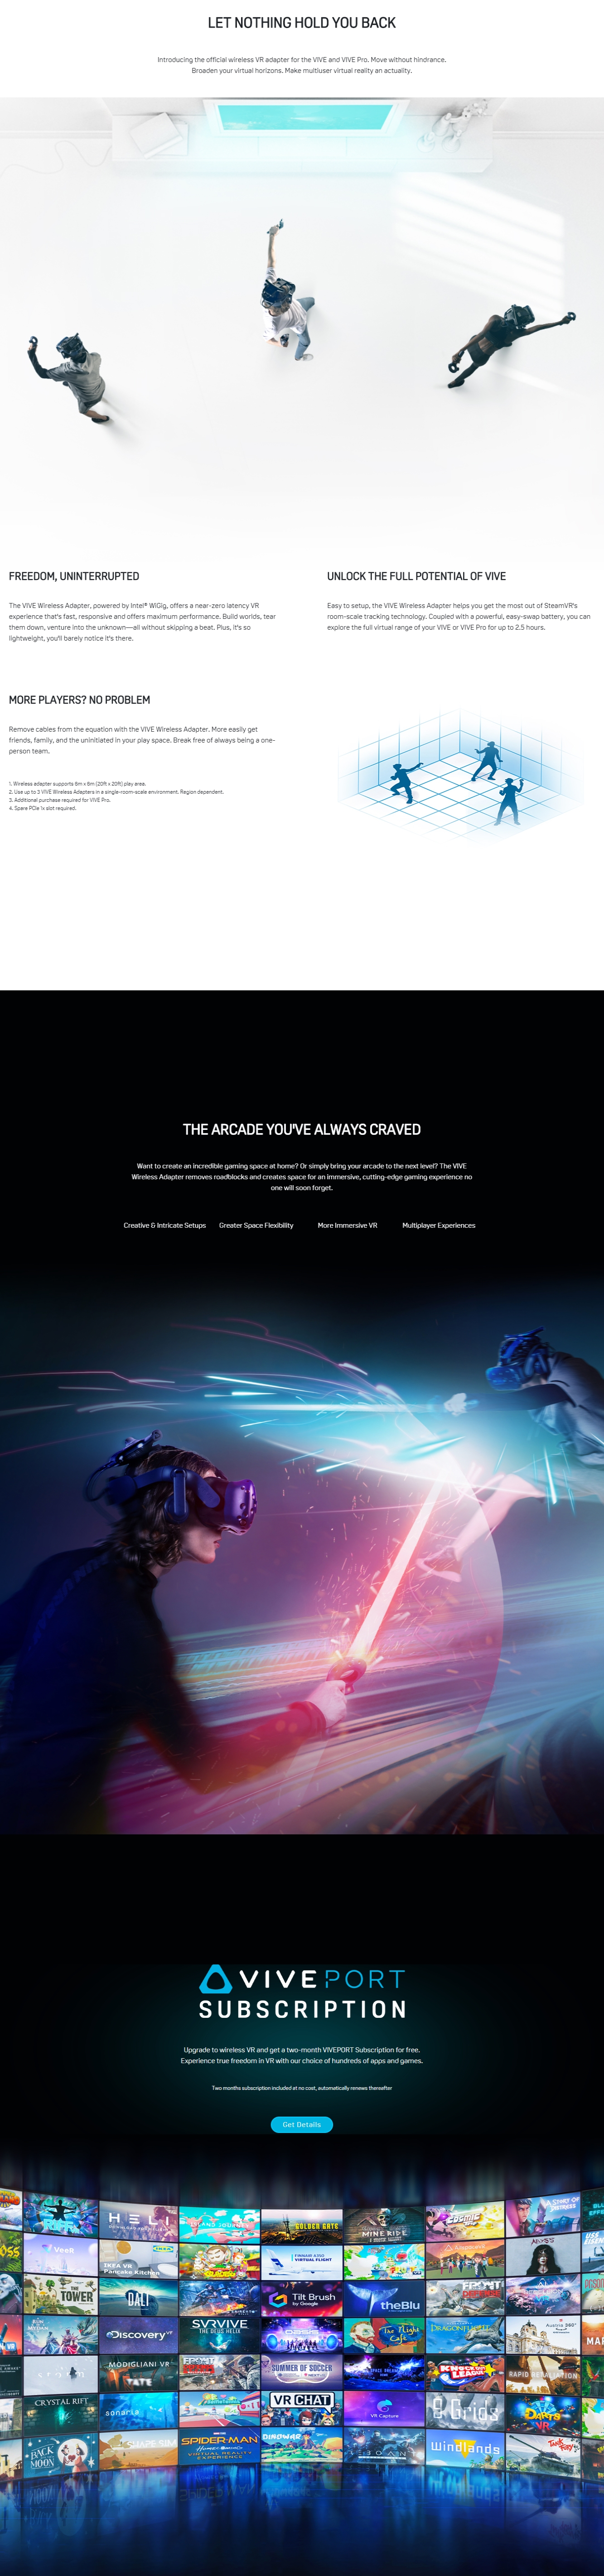 A large marketing image providing additional information about the product HTC VIVE Wireless Adapter Rev.1 - Additional alt info not provided